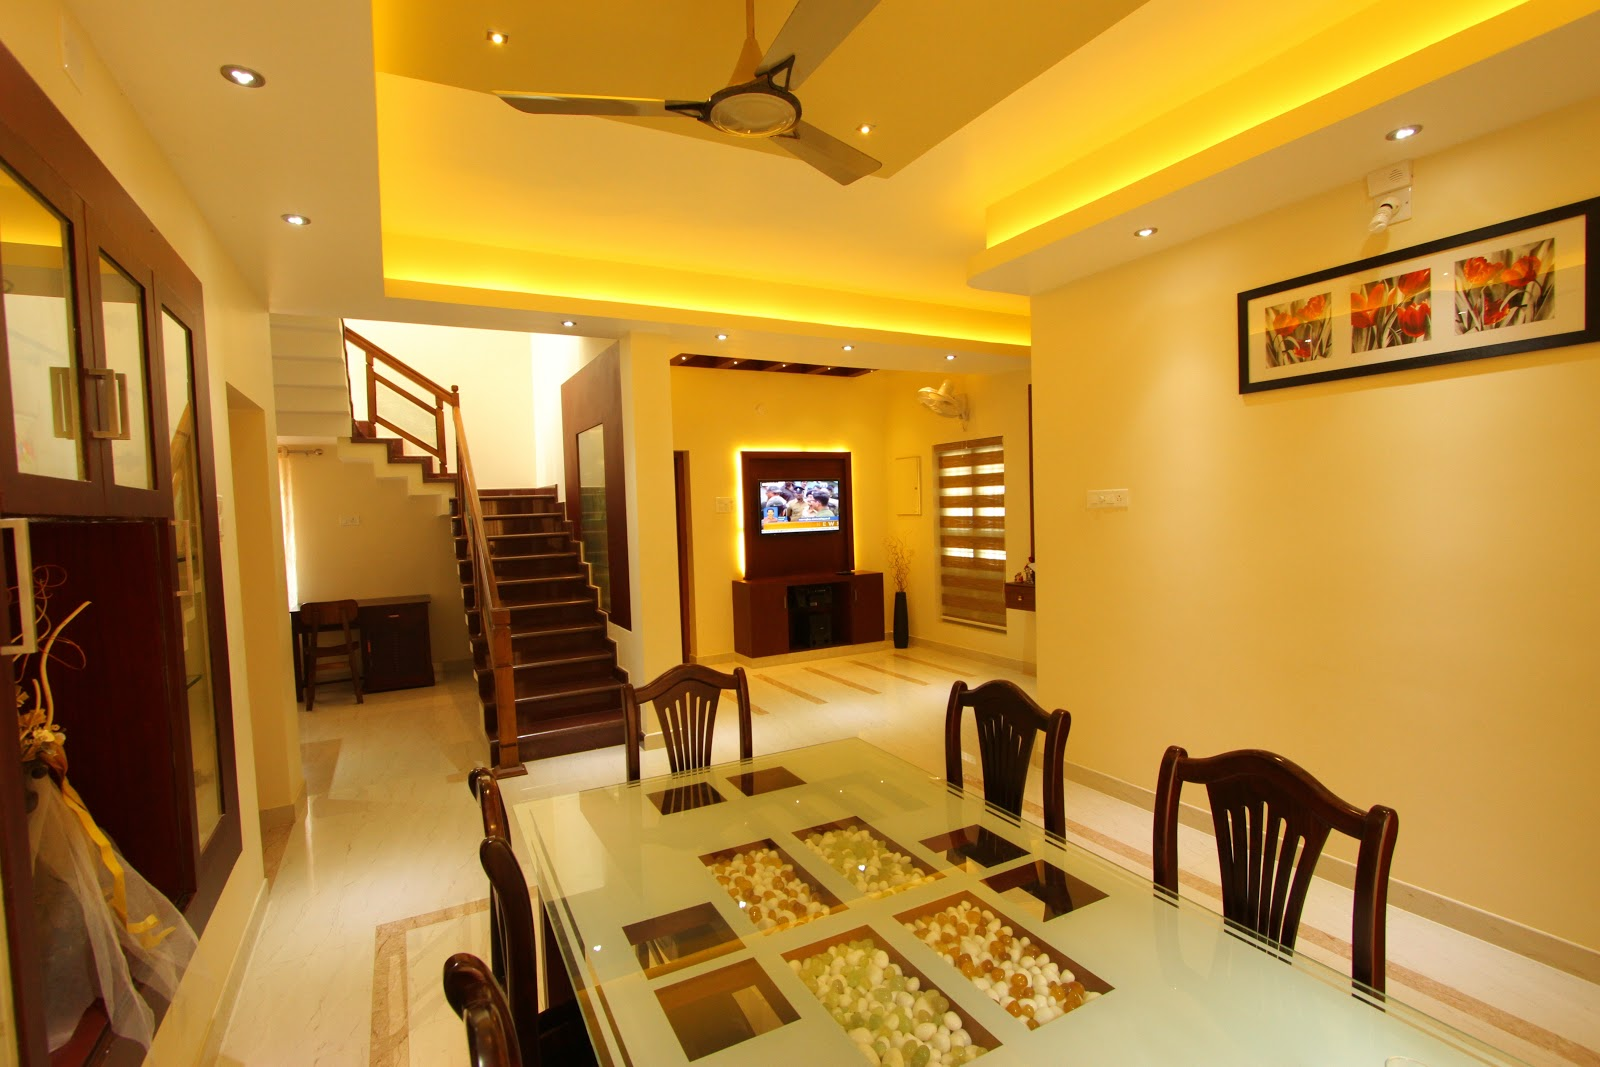 Shilpakala interiors award winning home interior design for An interior design